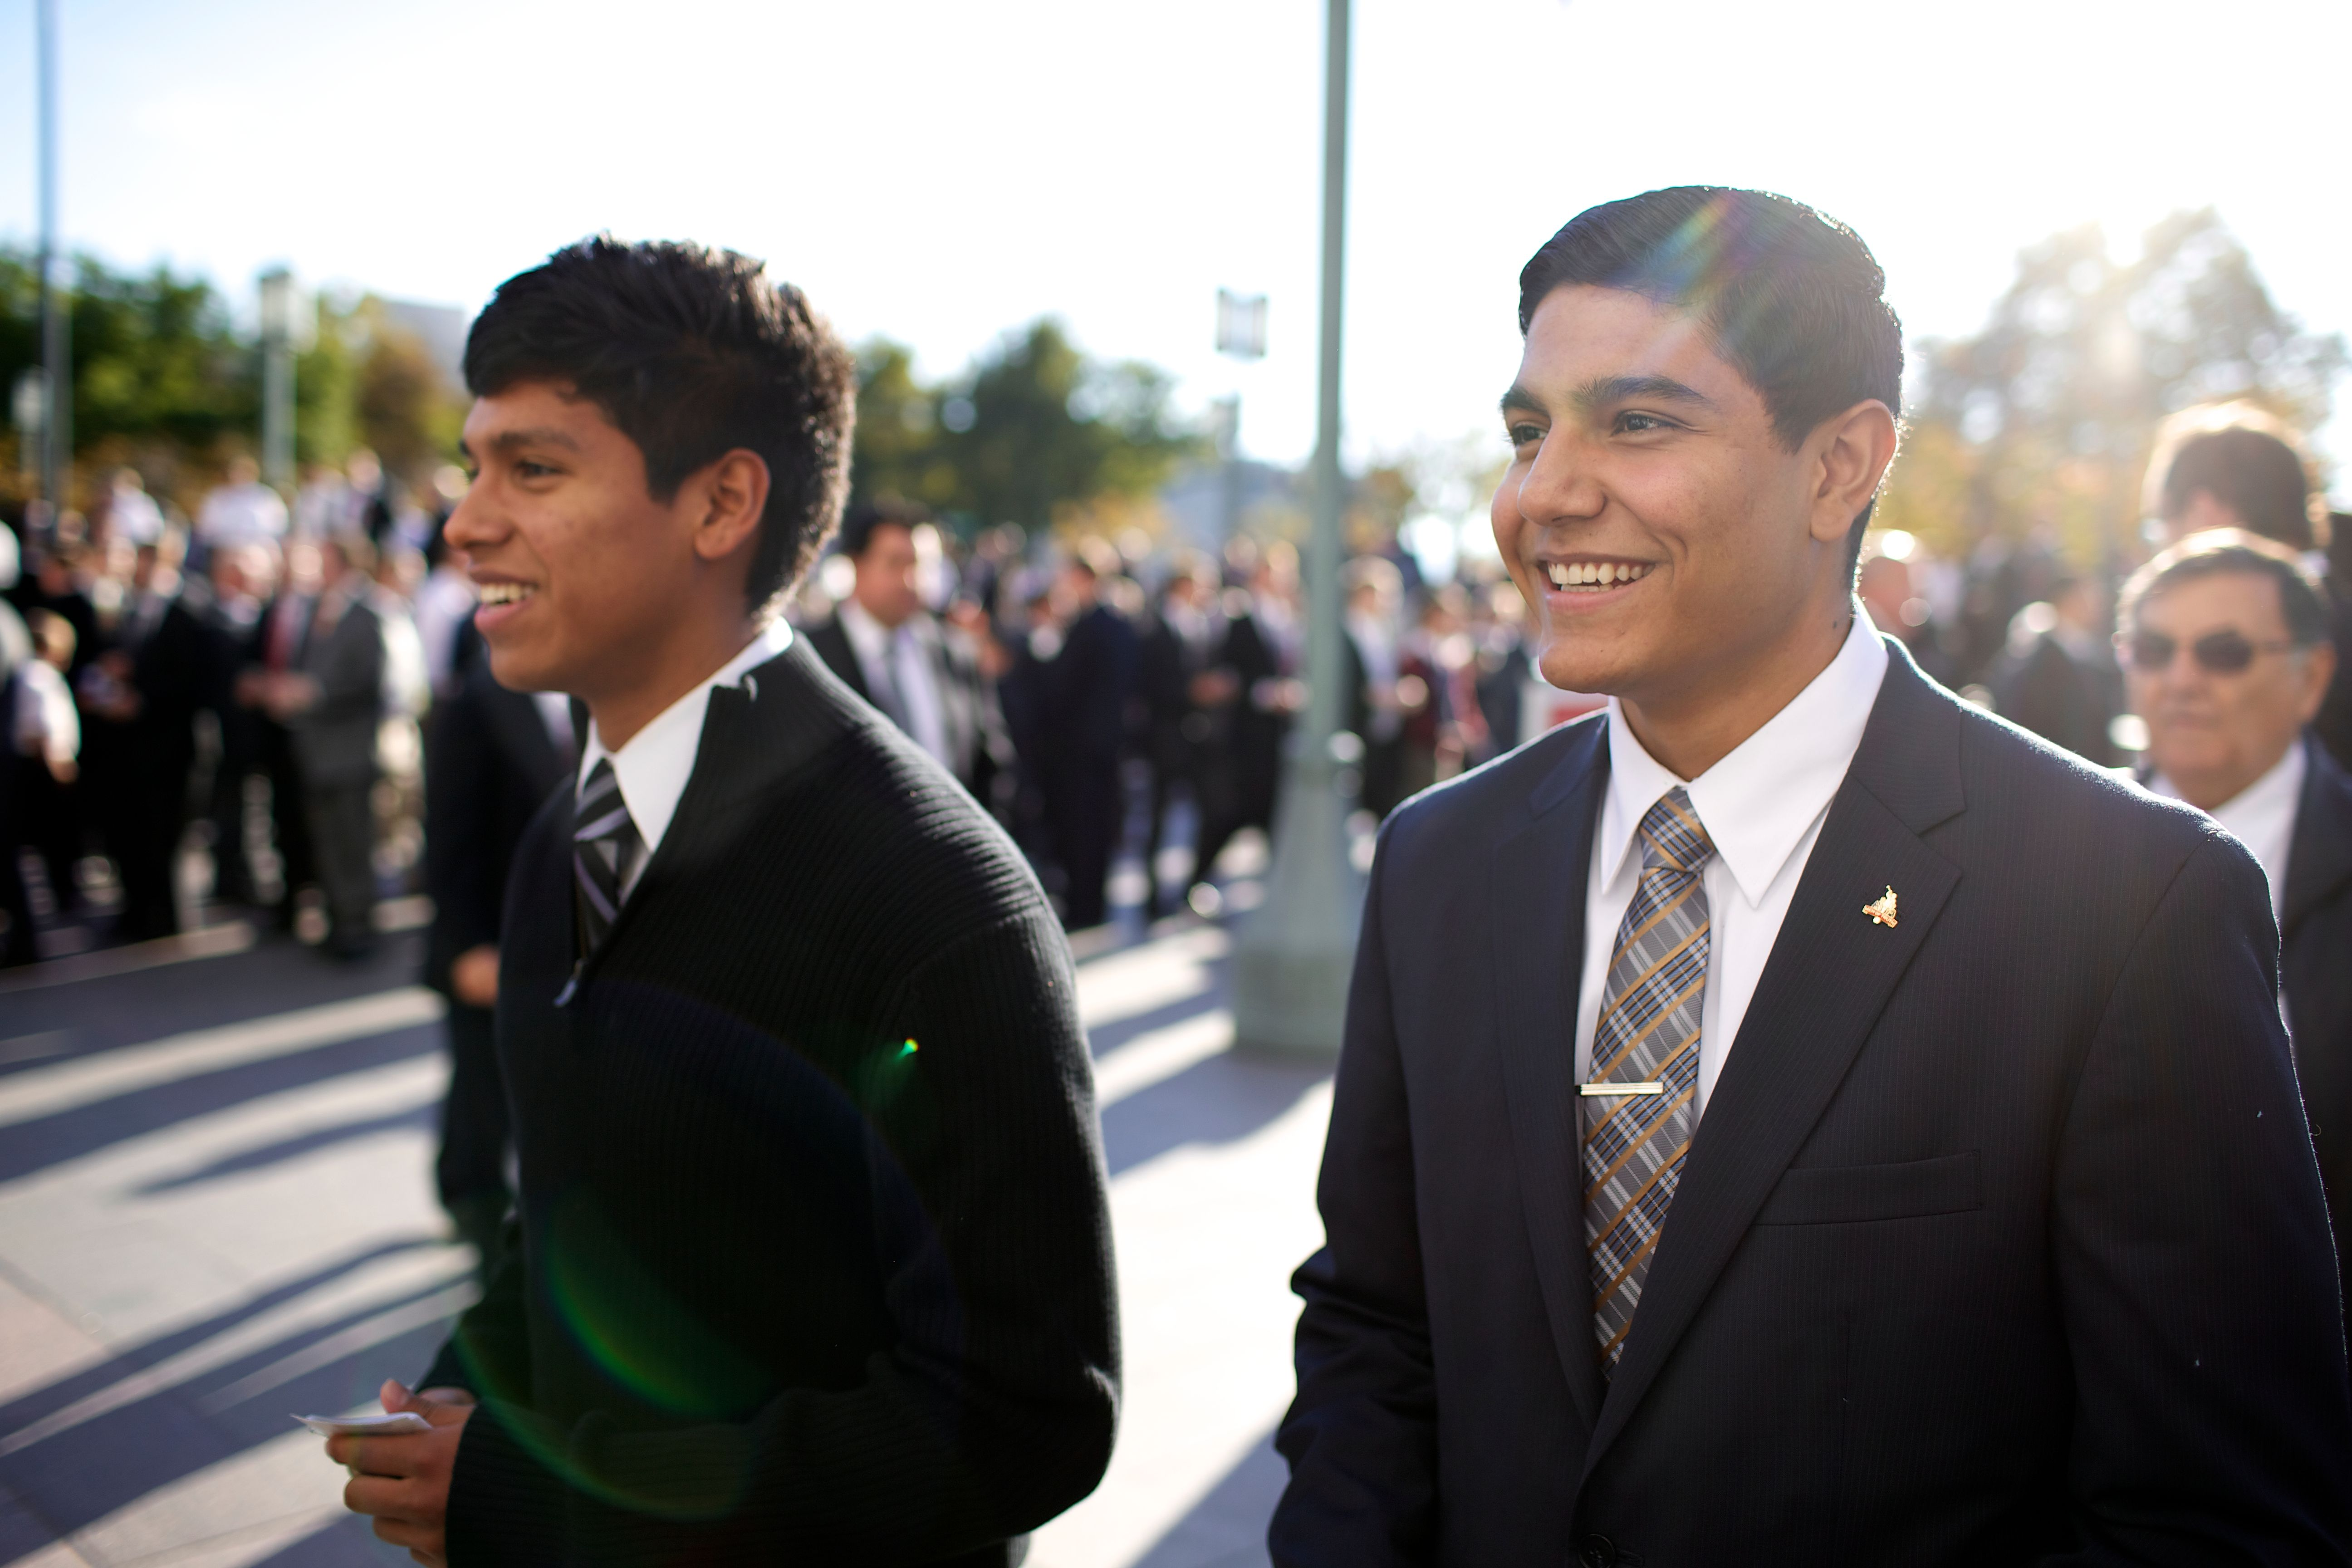 Two young men standing outside with other men while waiting for the priesthood session.